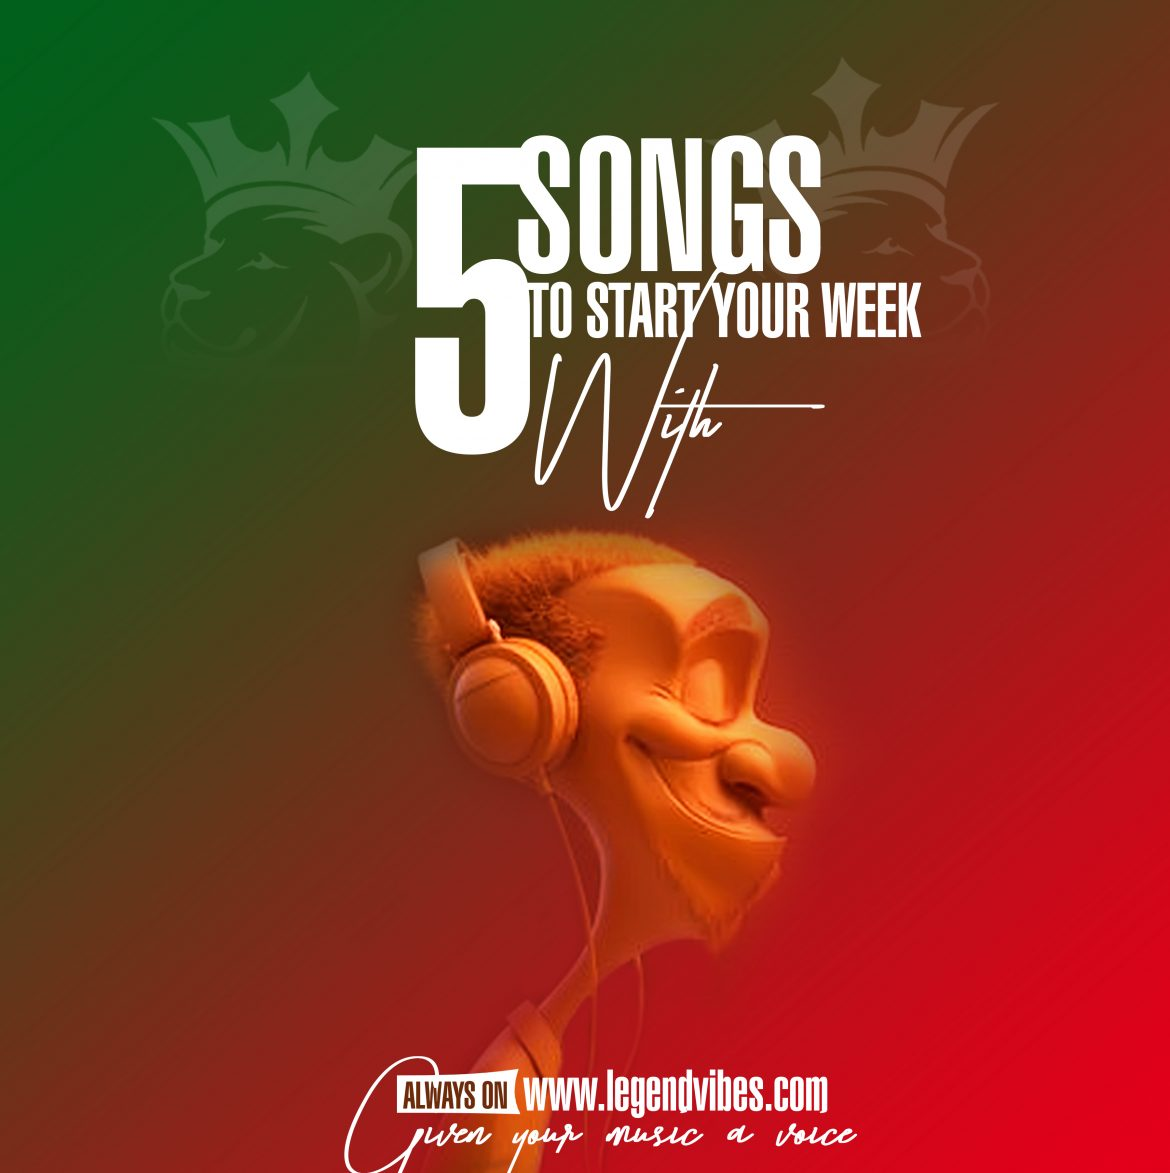 L V Recommends: 5 Songs to Start Your Week With